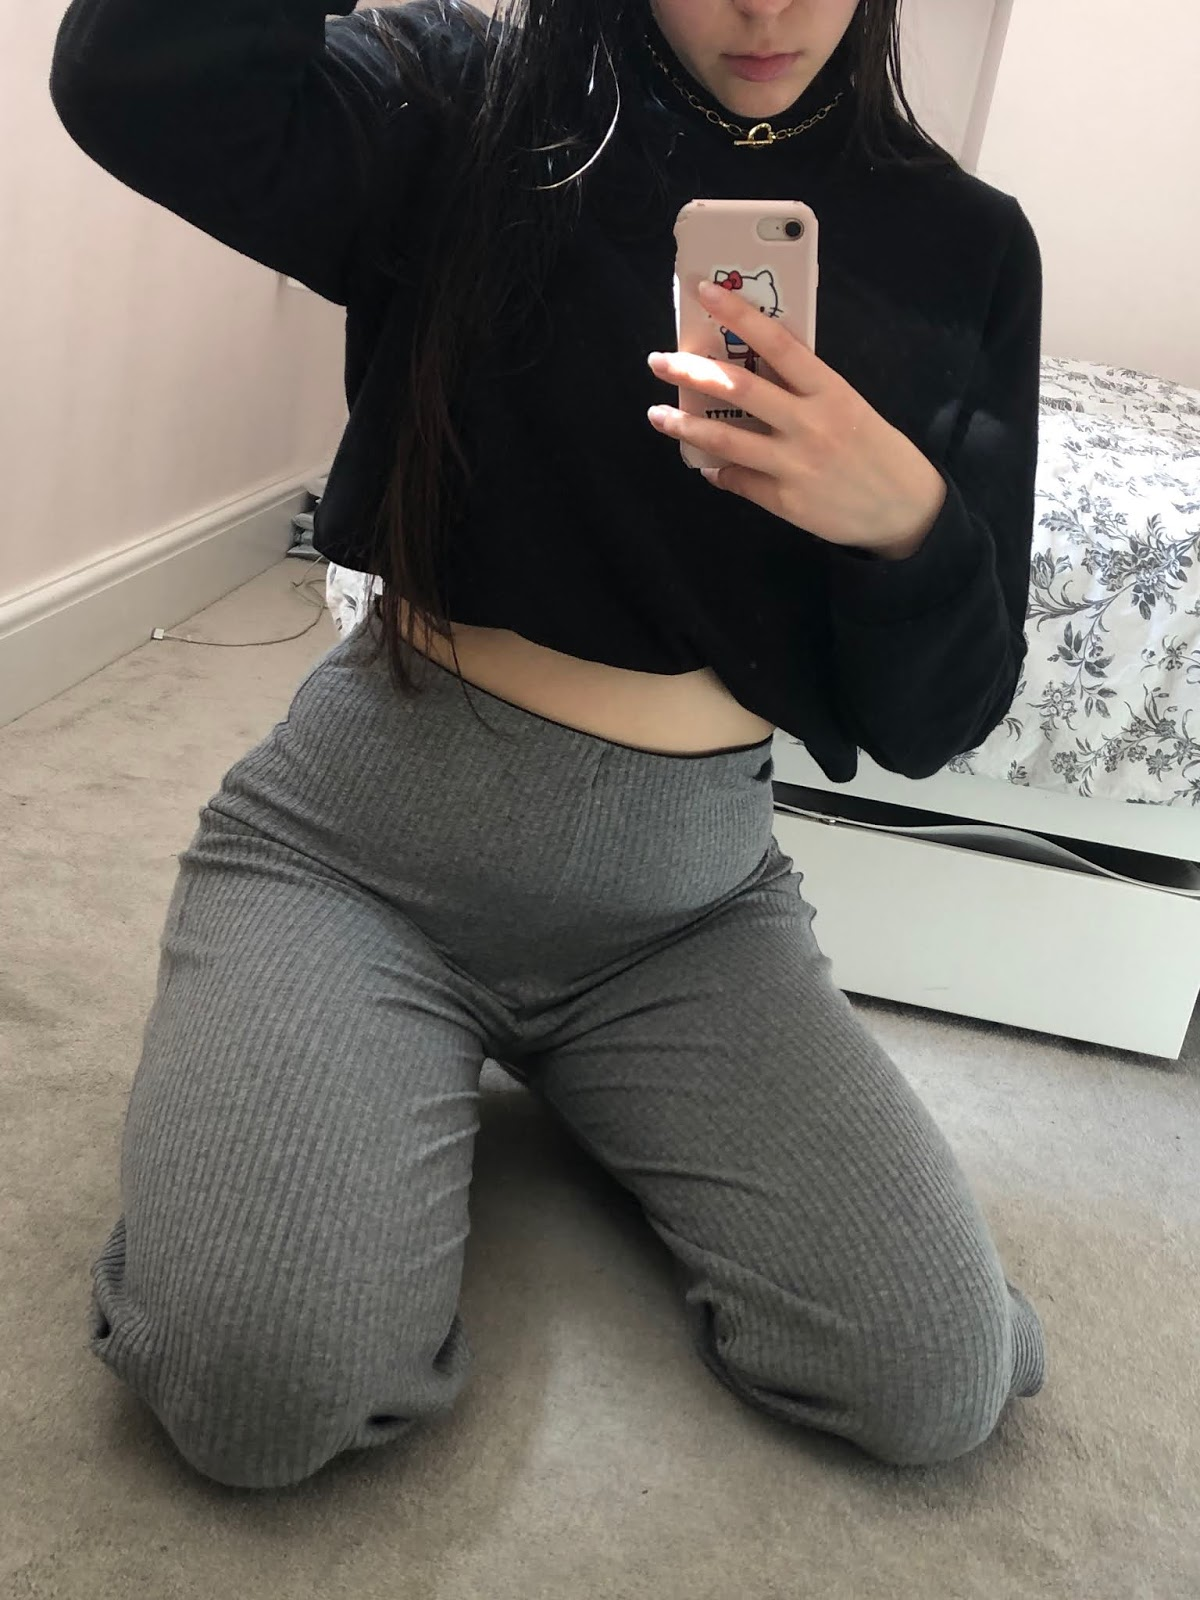 outfit, style, fashion, blogger, lockdown, OOTD, mirror selfie